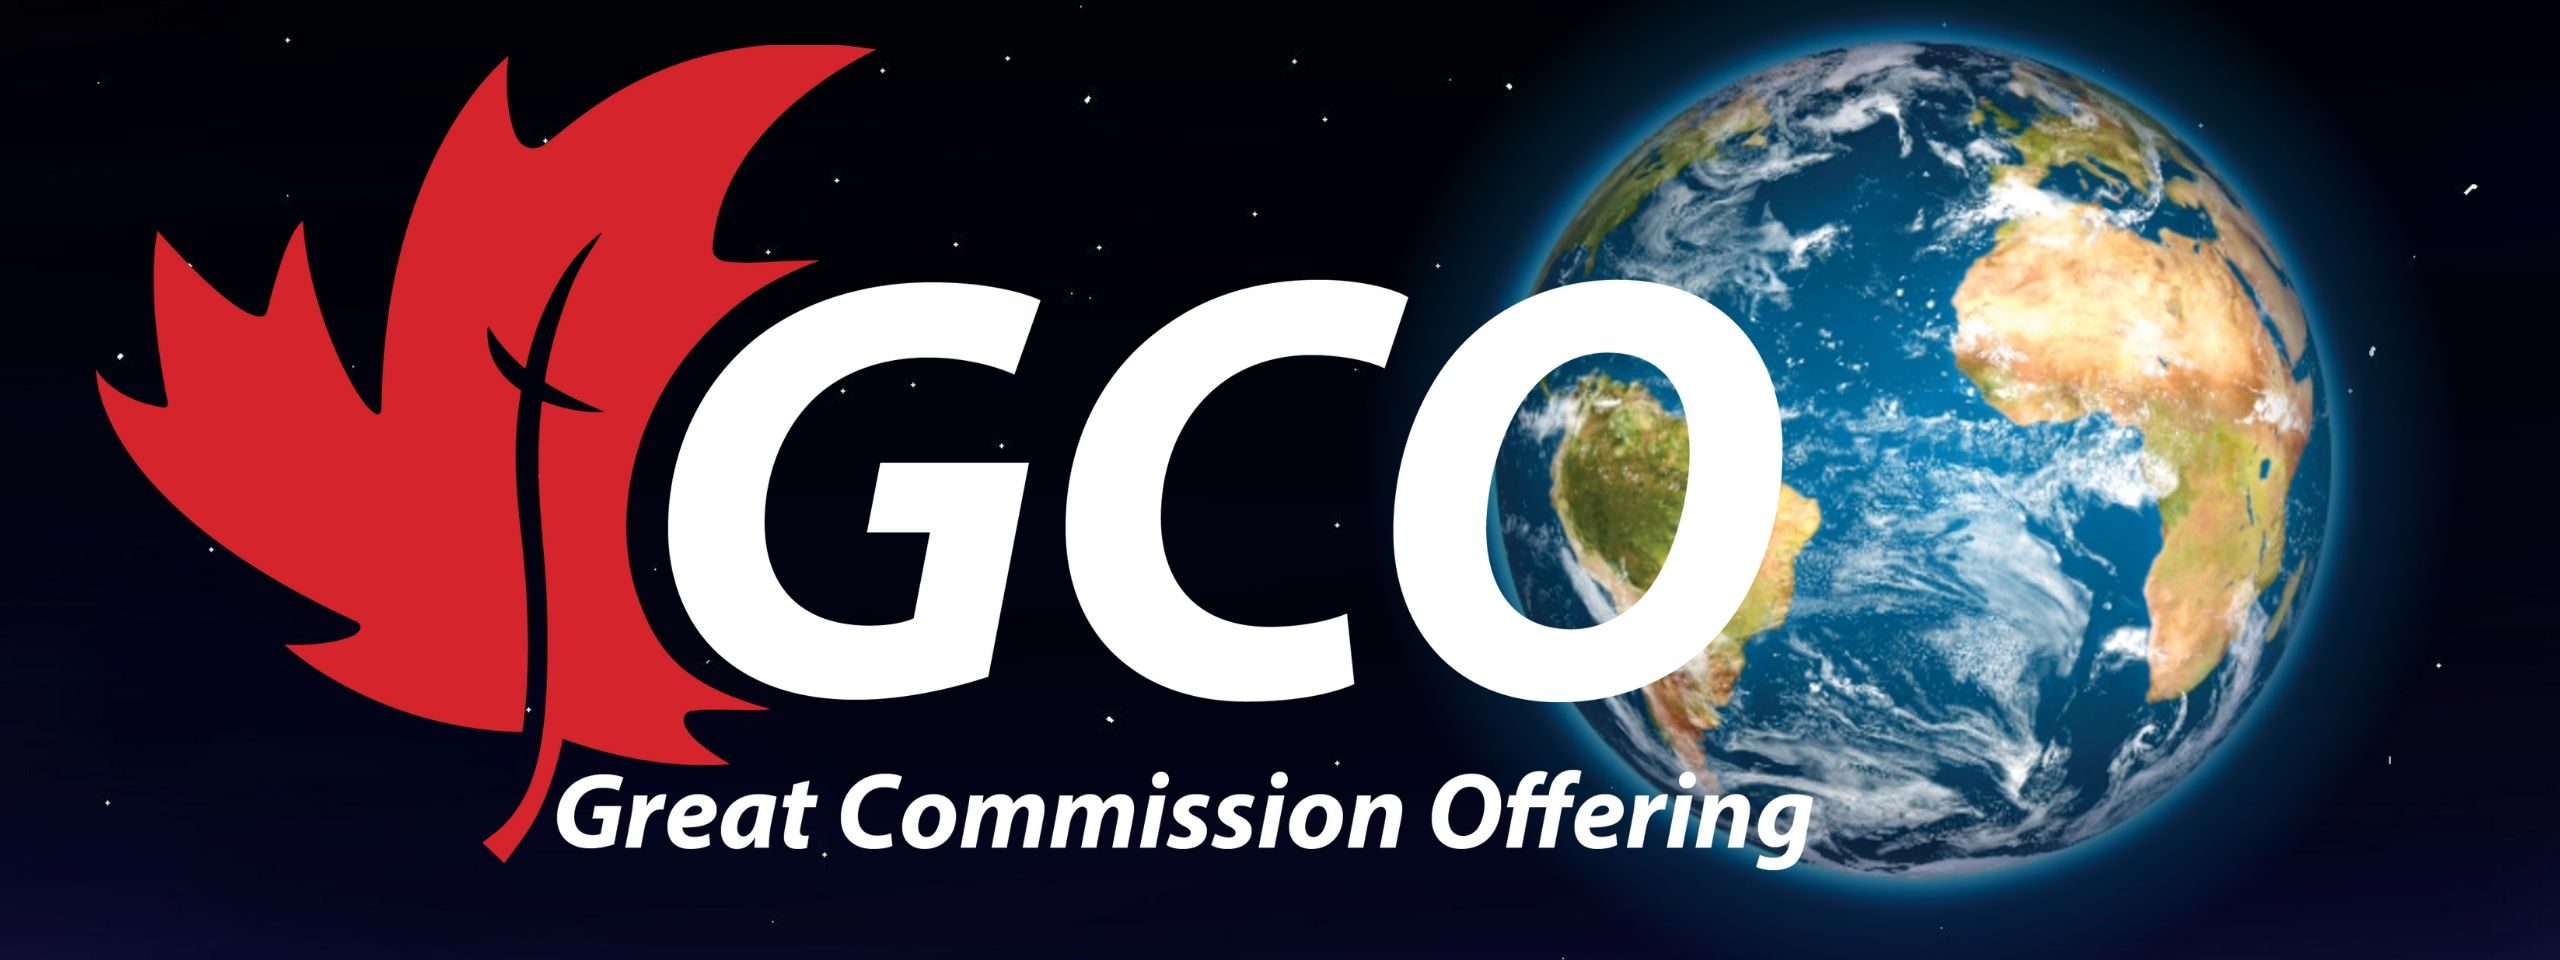 Great Commission Offering